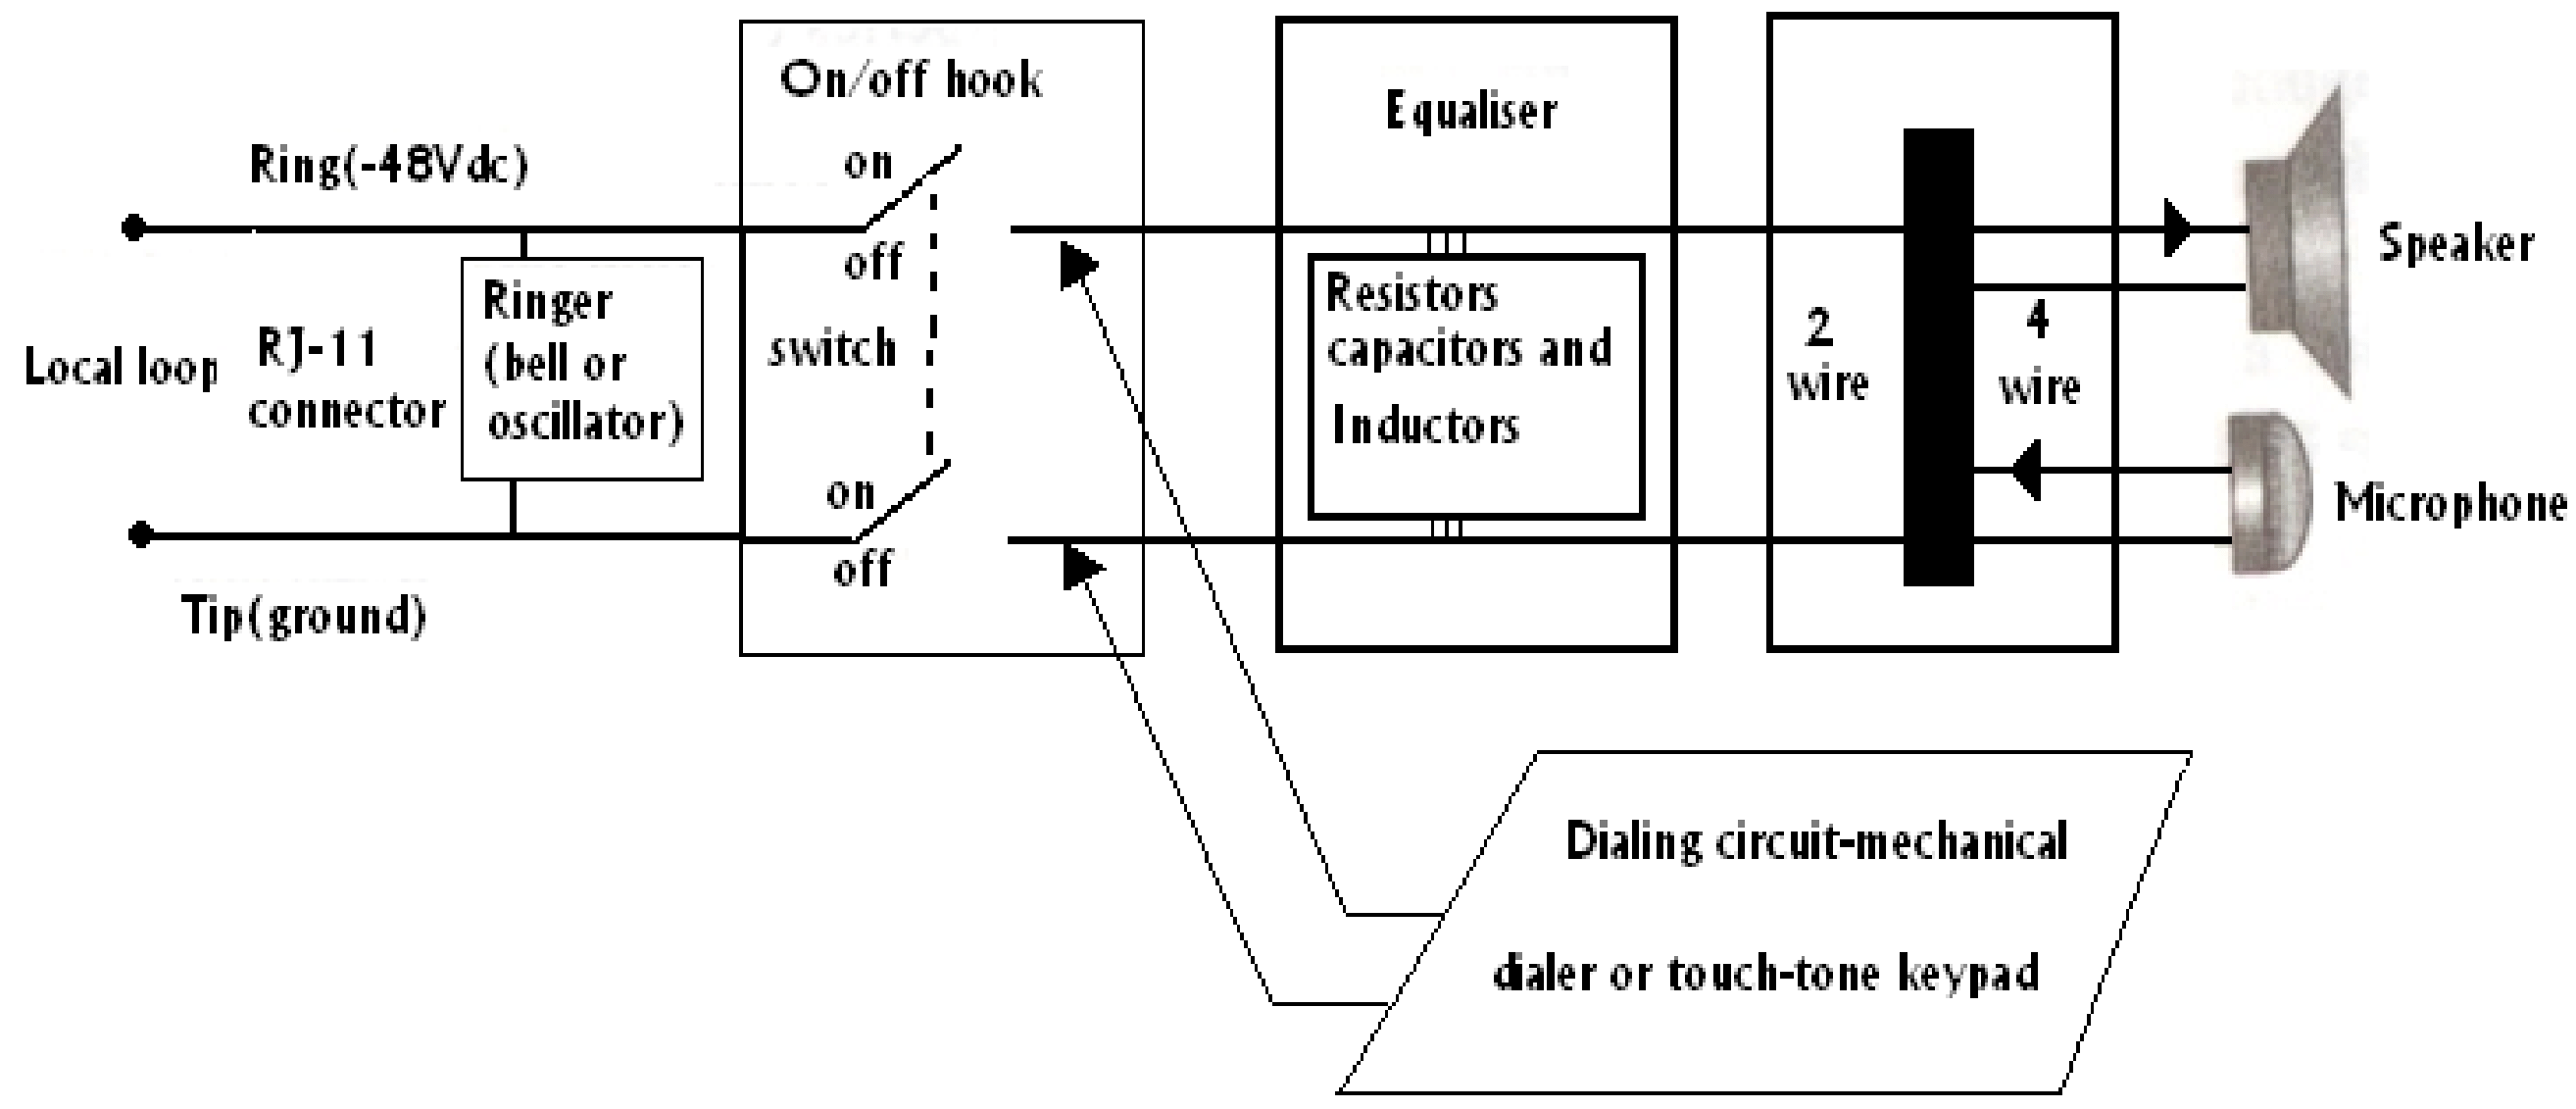 3000 ford tractor alternator wiring diagrams pdf with Cabela S Winch Wiring Diagram on Cabela S Winch Wiring Diagram besides 1978 Ford 555 Backhoe Wiring Diagram additionally Ford 4610 Wiring Diagram Free Download Schematic furthermore Jd 1020 Wiring Diagram also Tractor Wiring Diagram For A Light.